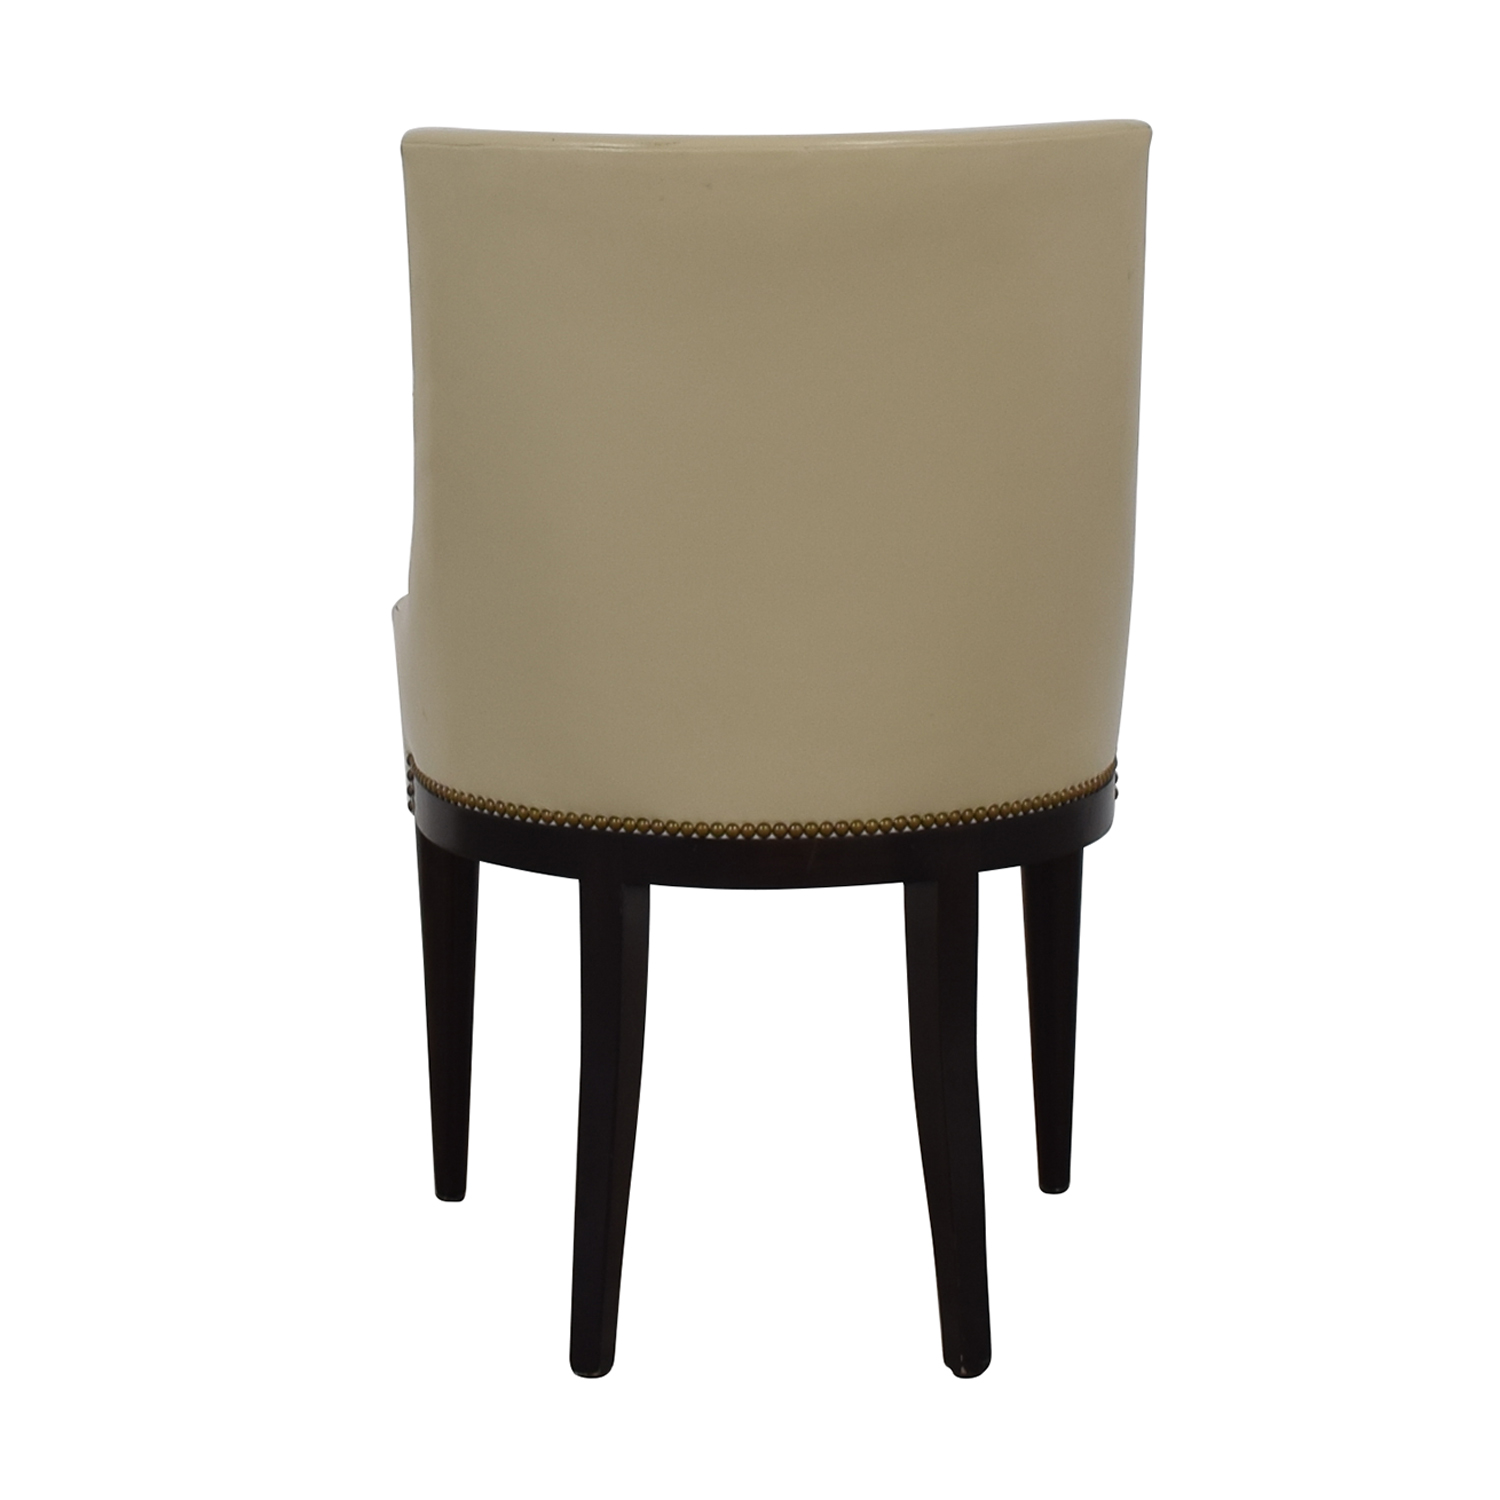 White Accent Chairs Used.90 Off Furniture Masters Furniture Masters White Accent Chair Chairs